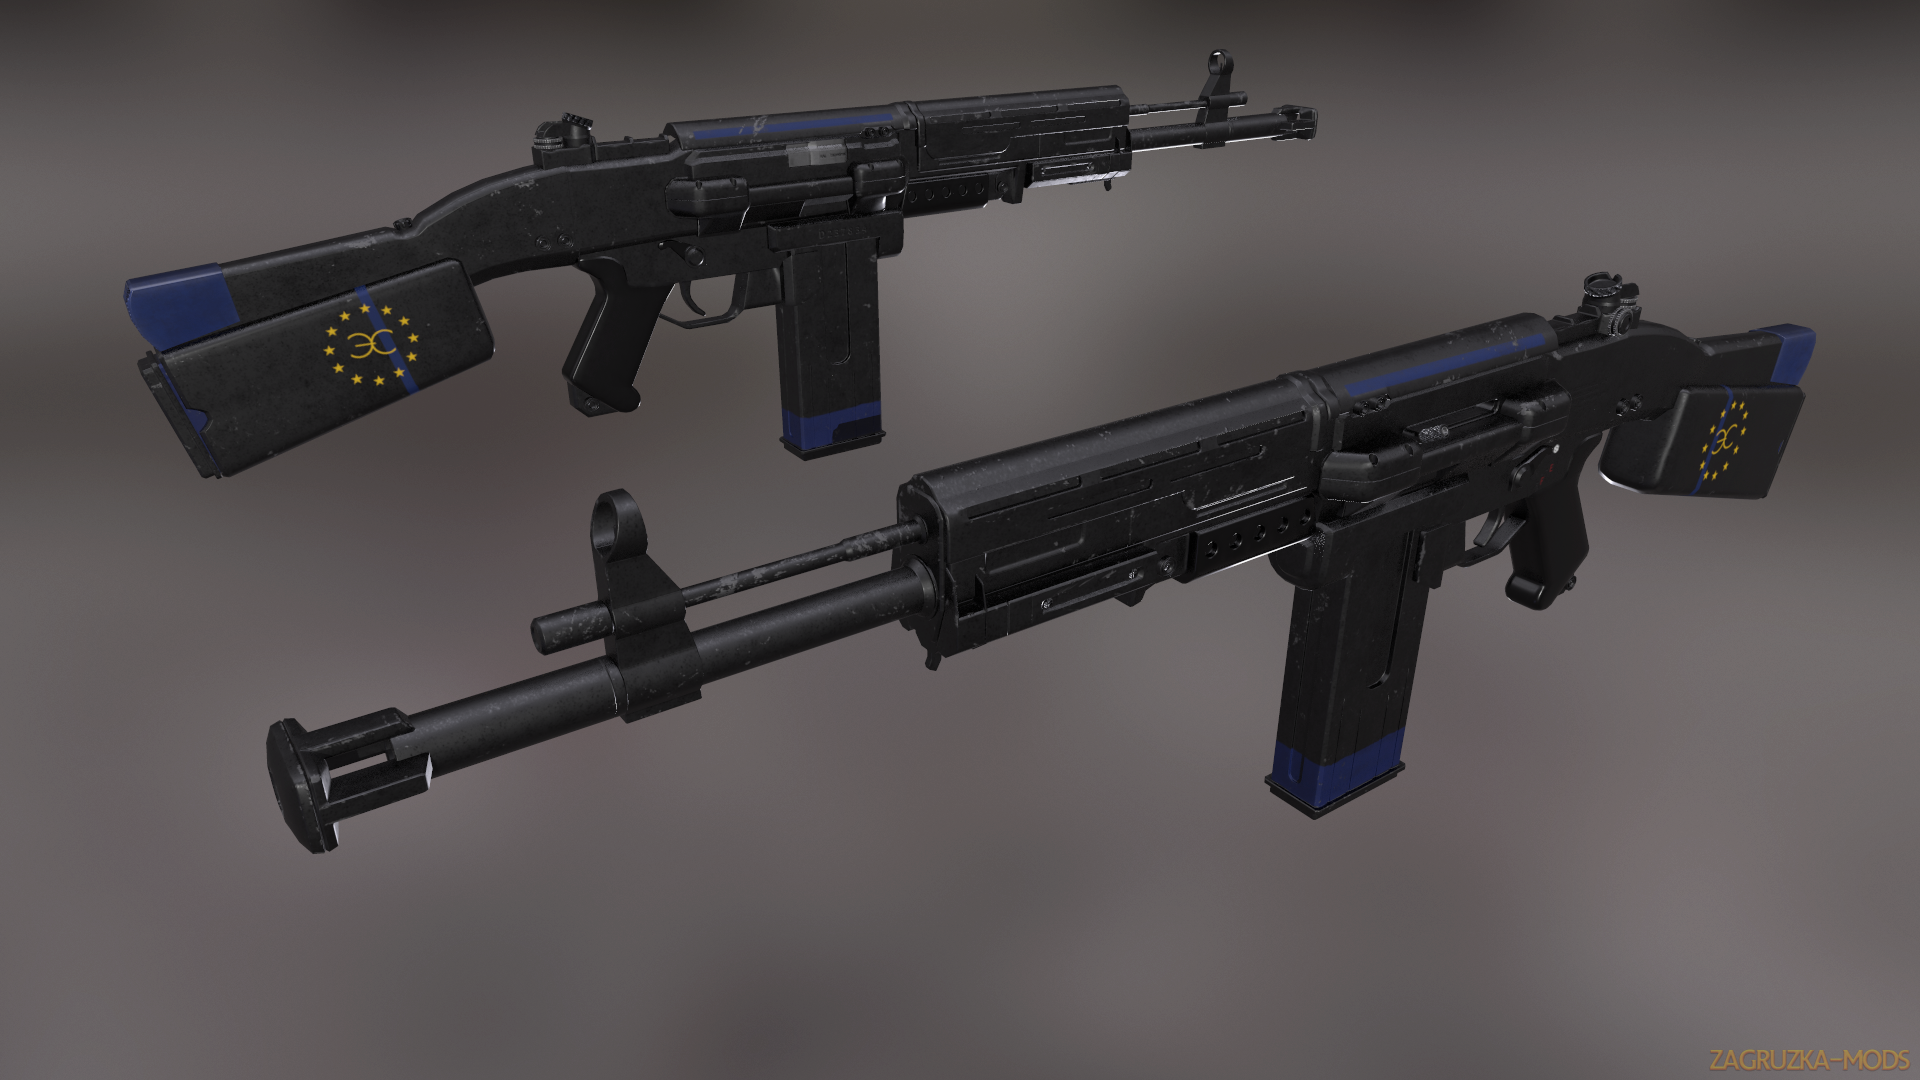 STG-60 Weapon v1.1 for Fallout 4